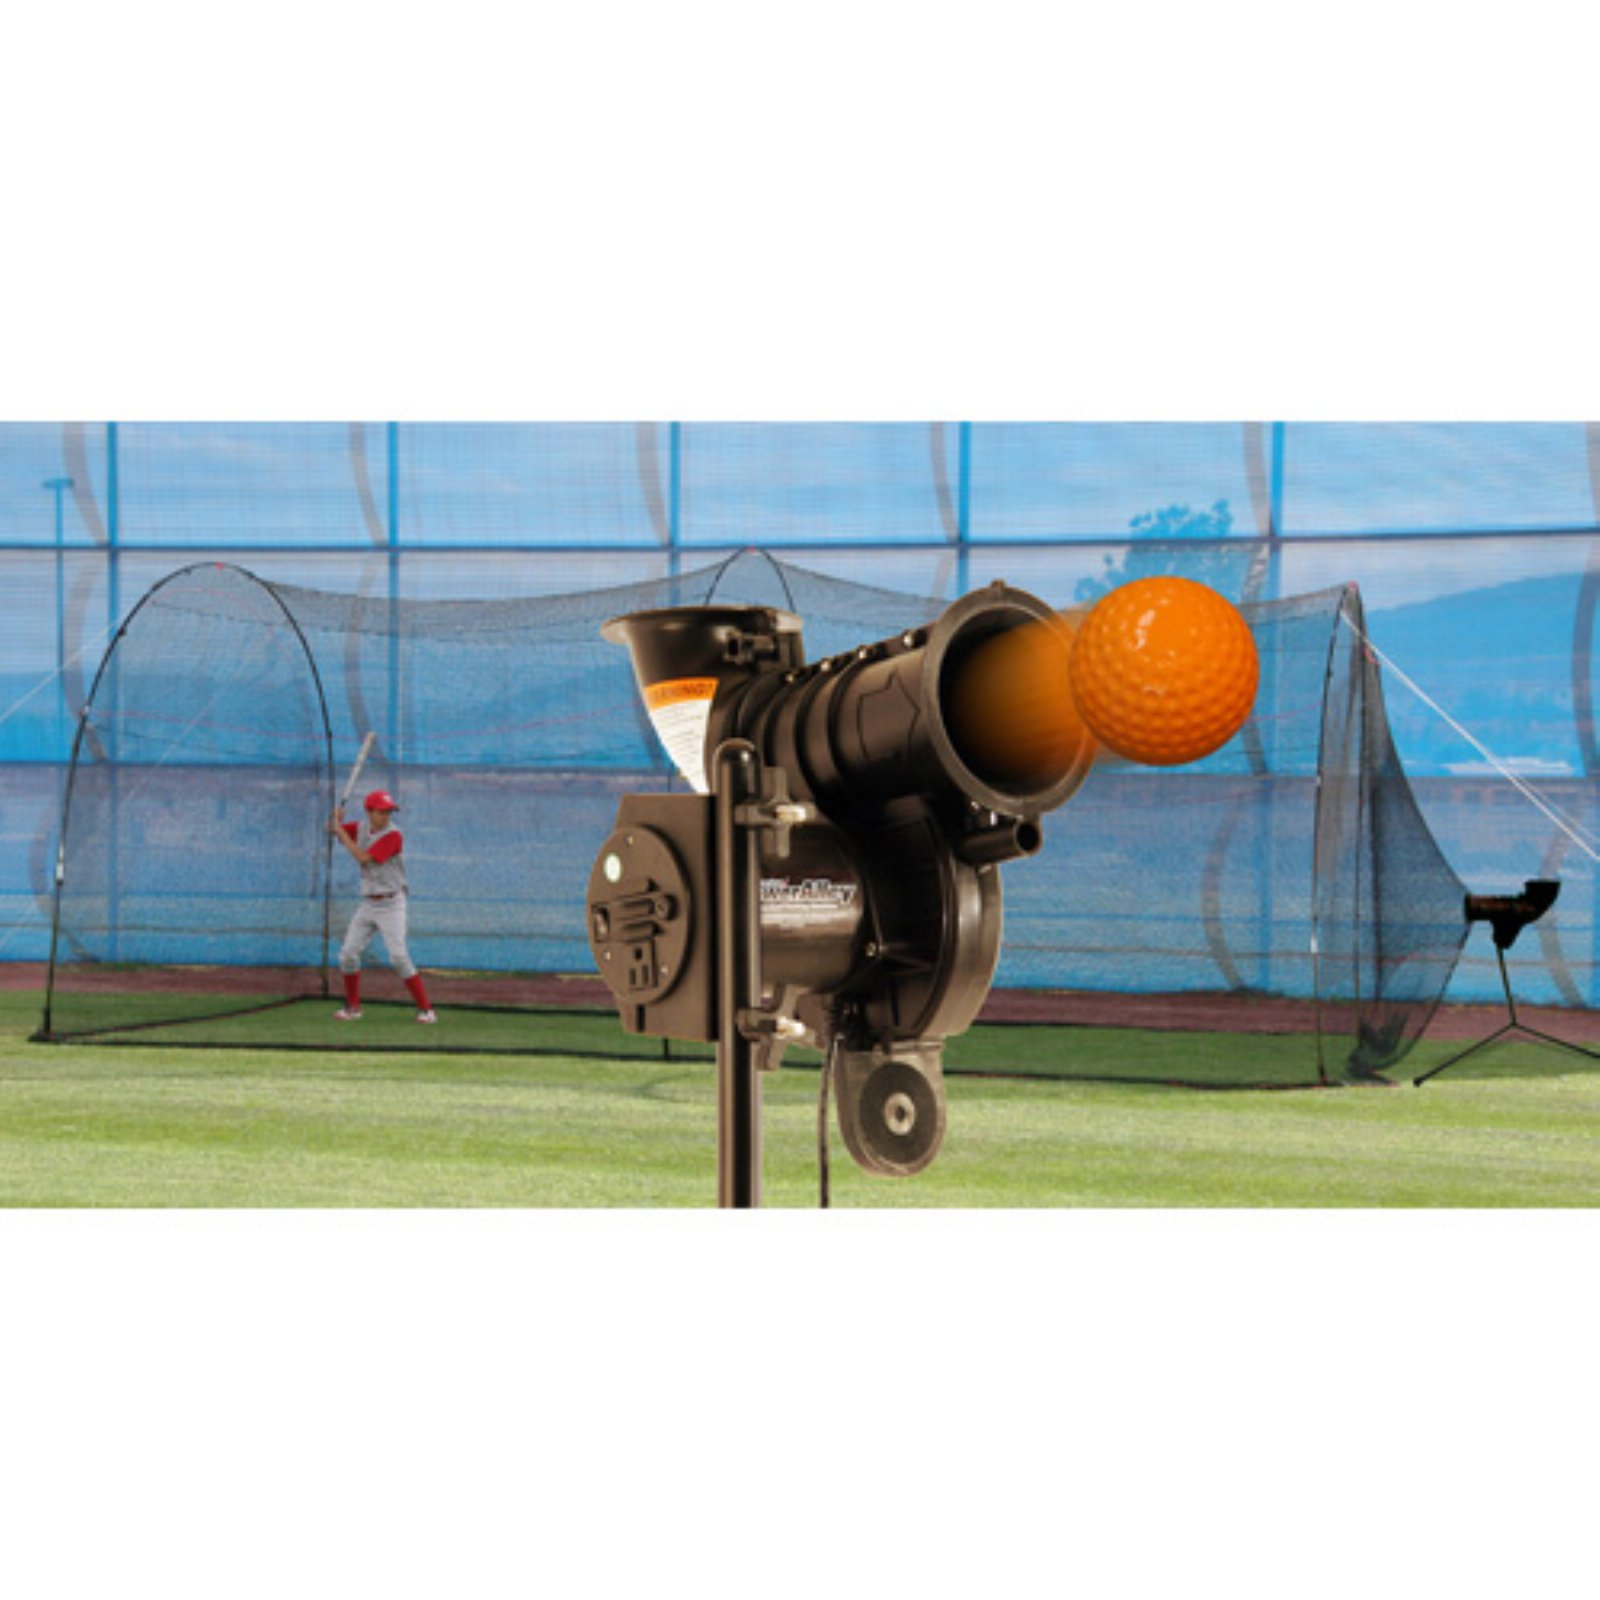 Heater Sports PowerAlley Lite-Ball Pitching Machine & PowerAlley Batting Cage